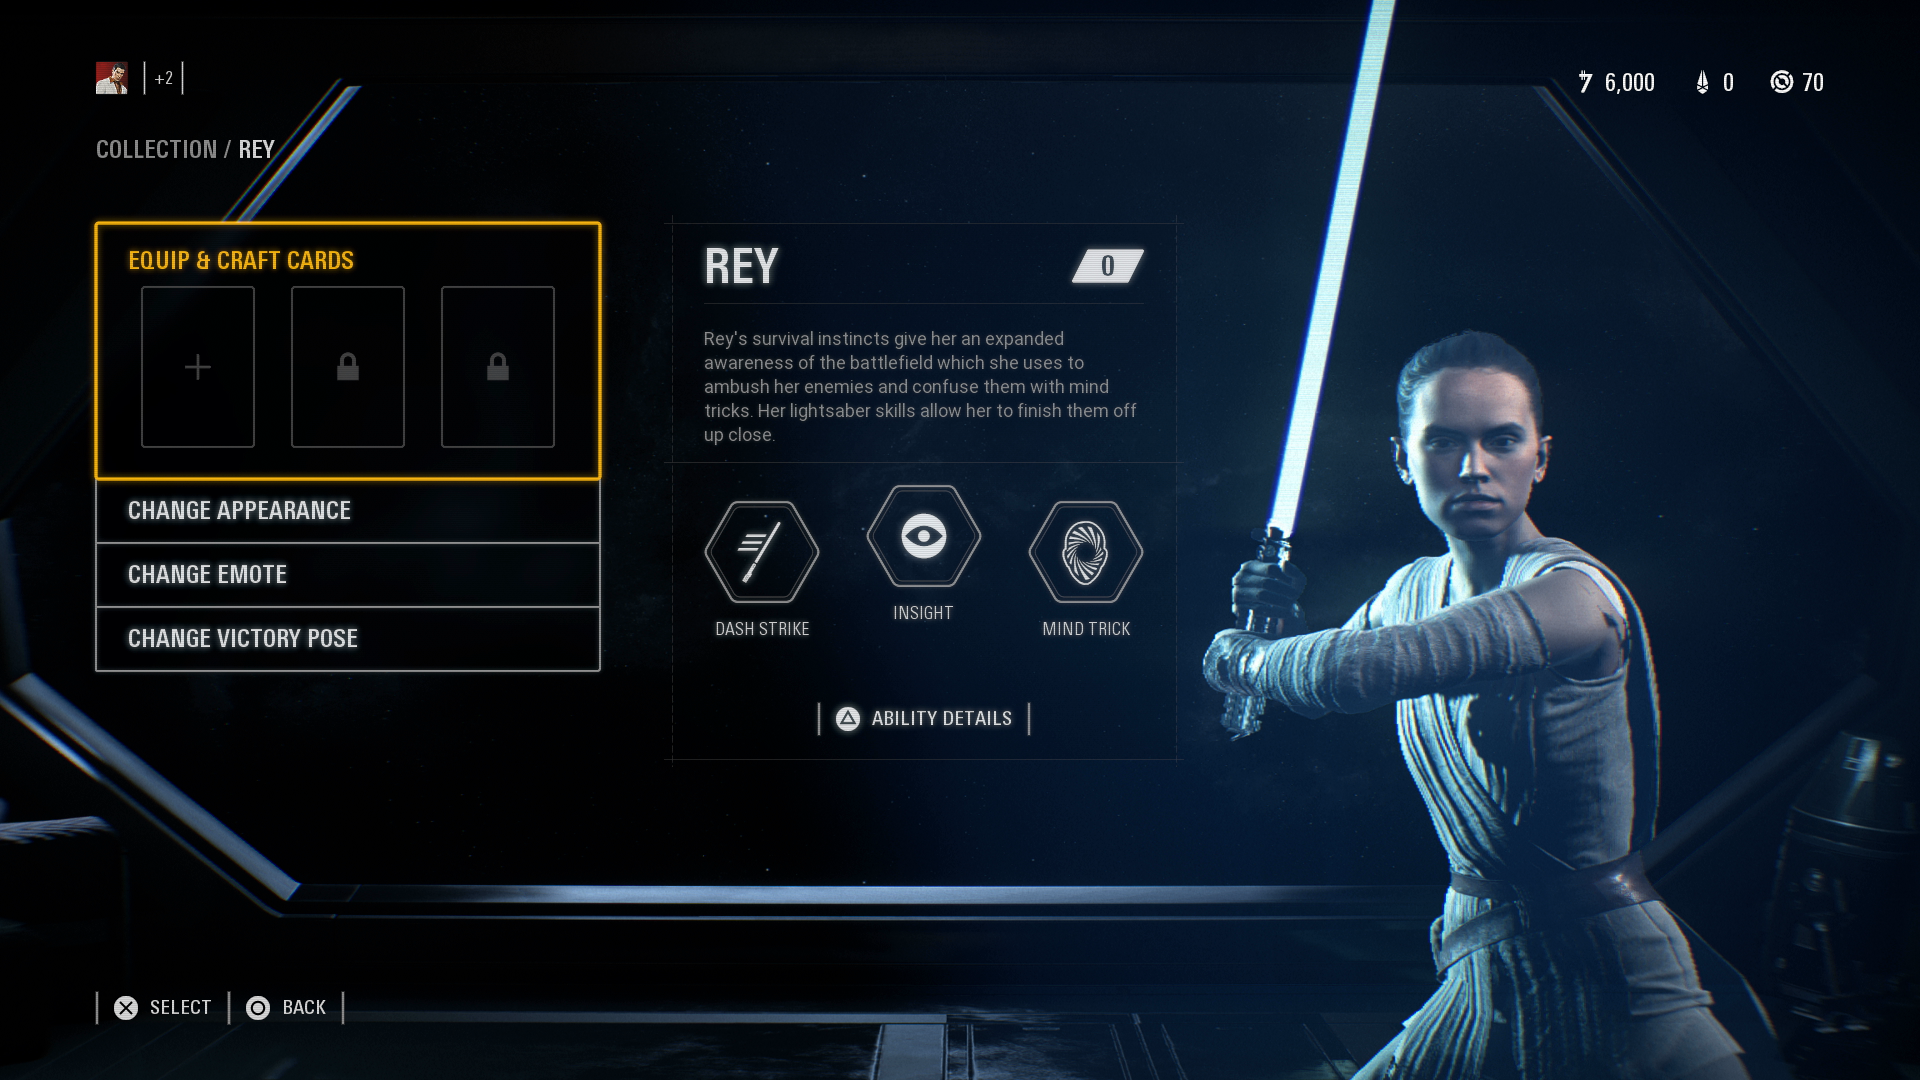 Battlefront II microtransactions are coming back, but sales were hit